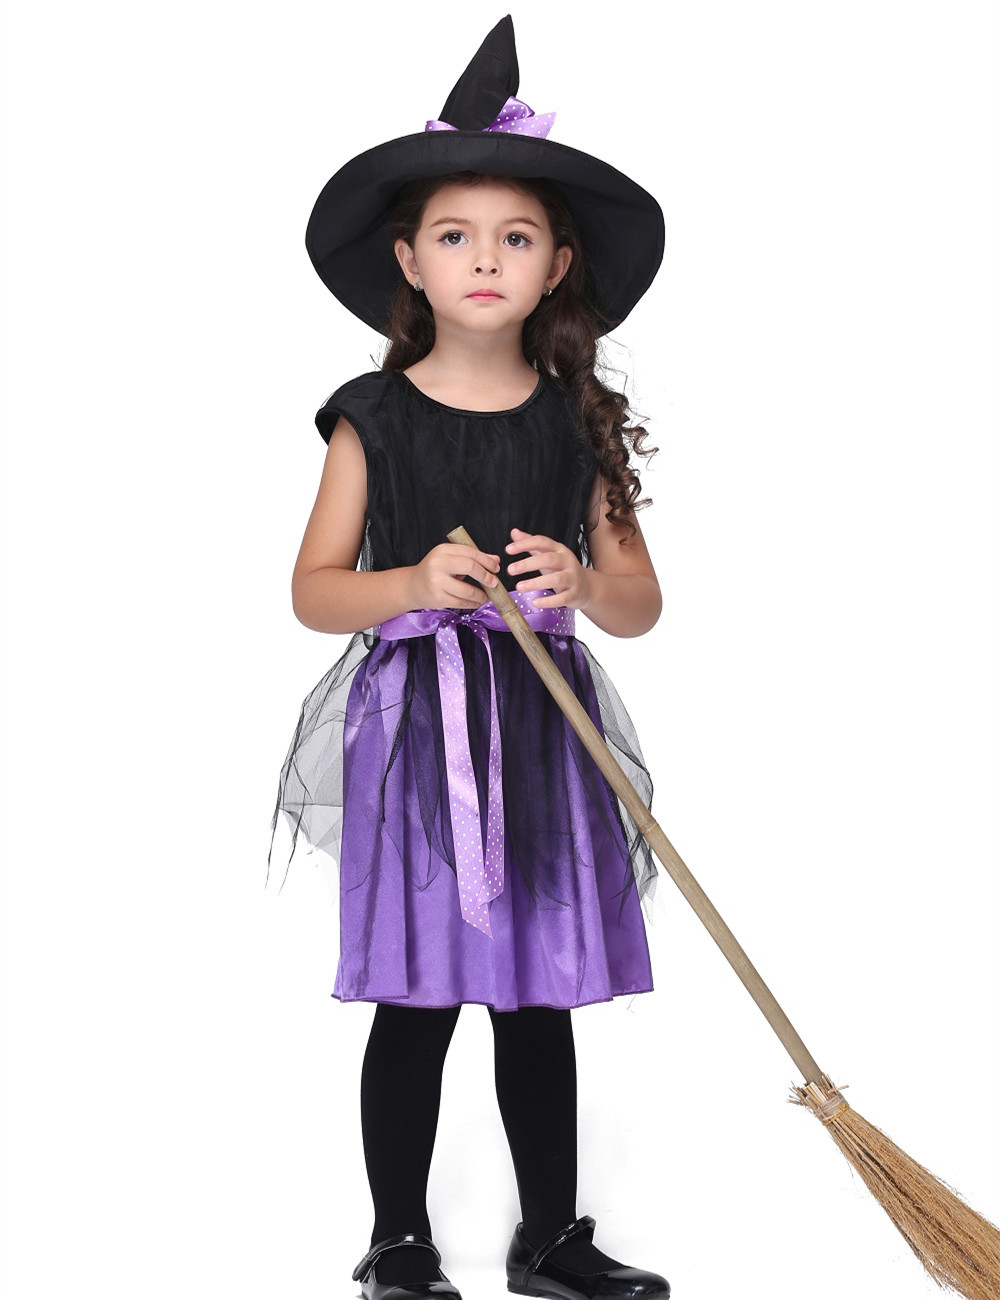 Girls Witch Costume Dress Halloween Costume For Kids Stage u0026 Dance Dress Toddler Short Sleeve Skirt Party Cosplay Purple -in Girls Costumes from Novelty ...  sc 1 st  AliExpress.com & Girls Witch Costume Dress Halloween Costume For Kids Stage u0026 Dance ...